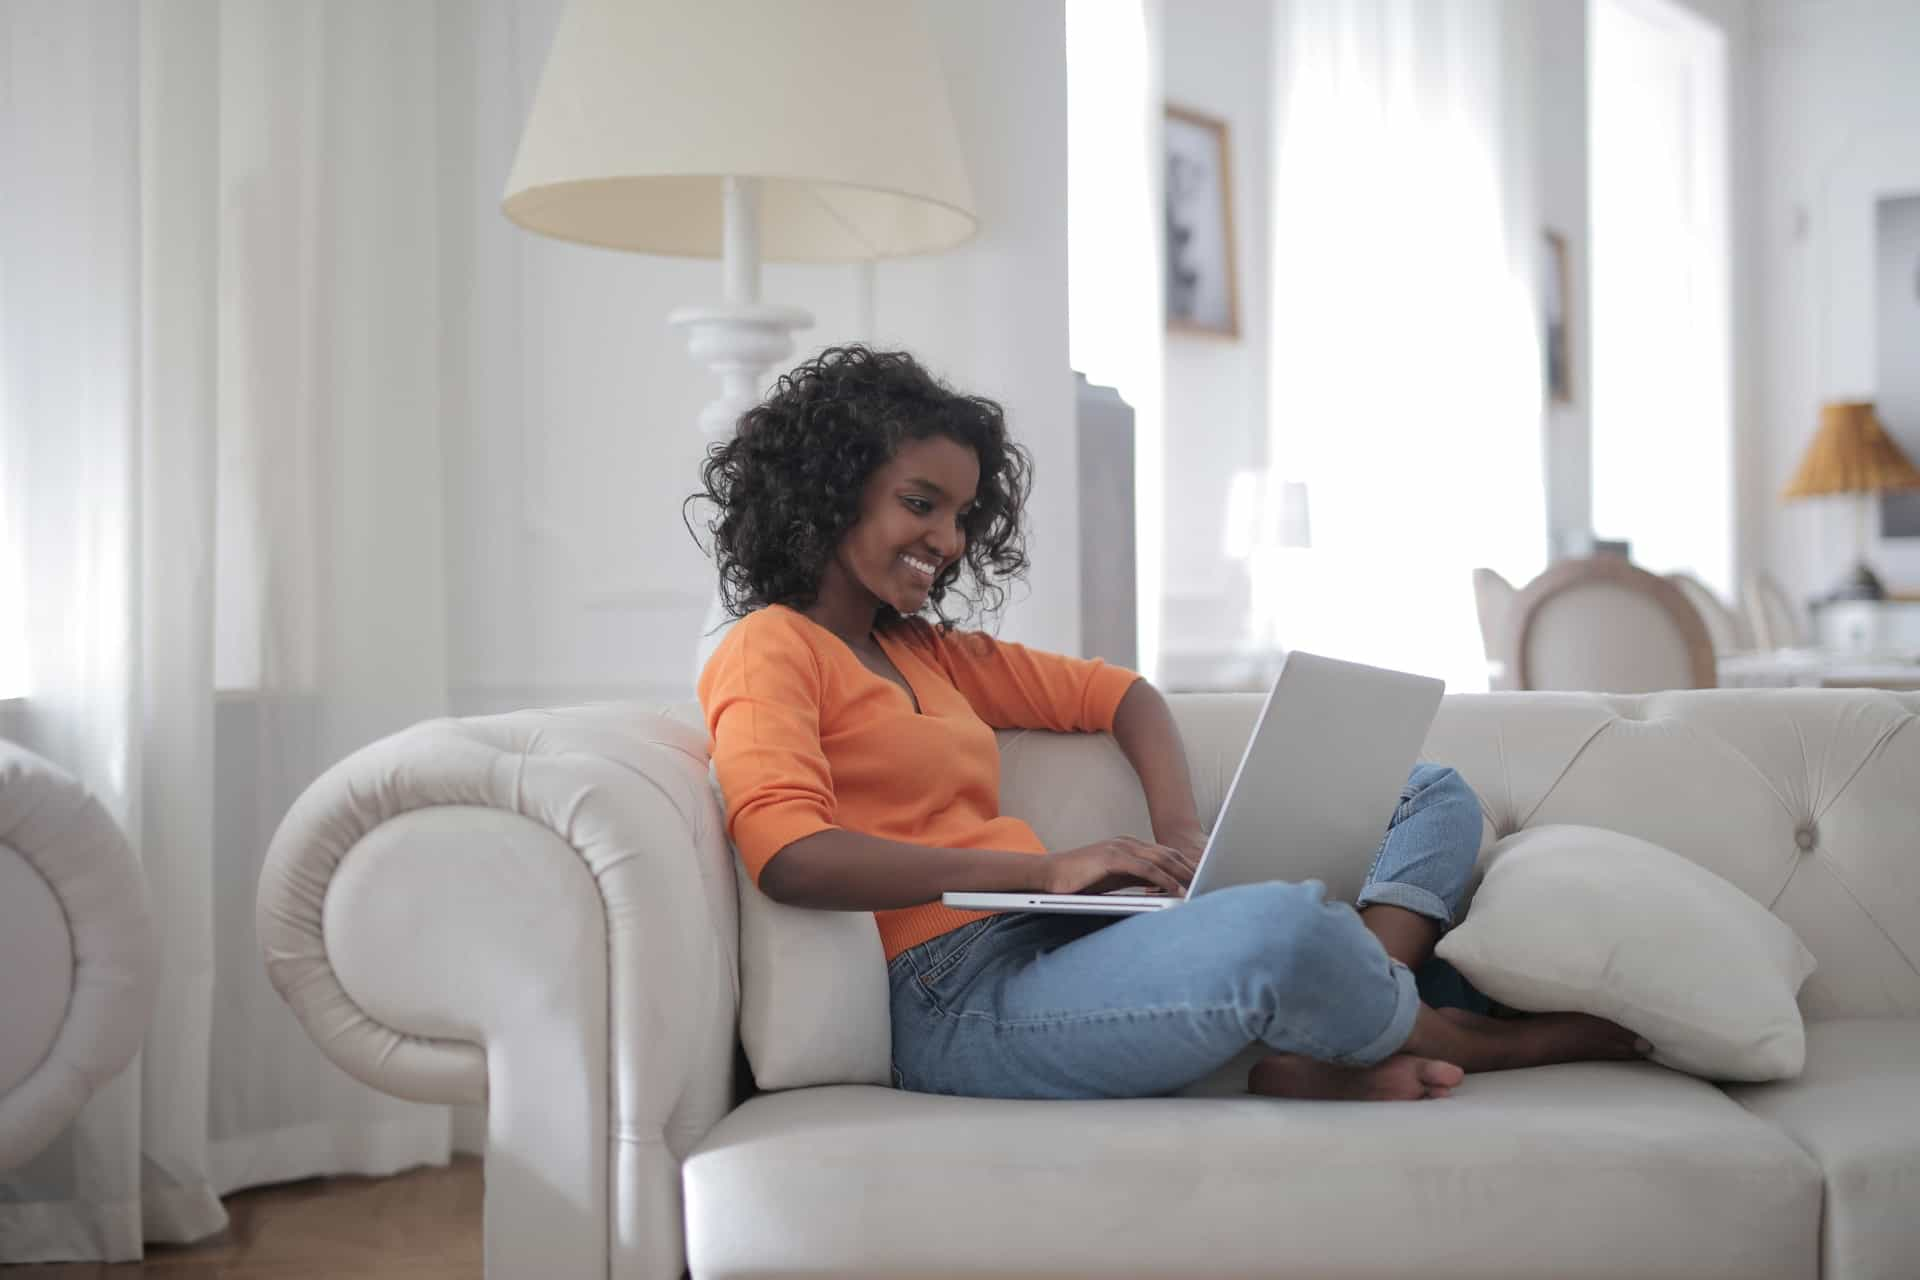 woman-sitting-on-white-couch-using-laptop-computer-3960127 (1)